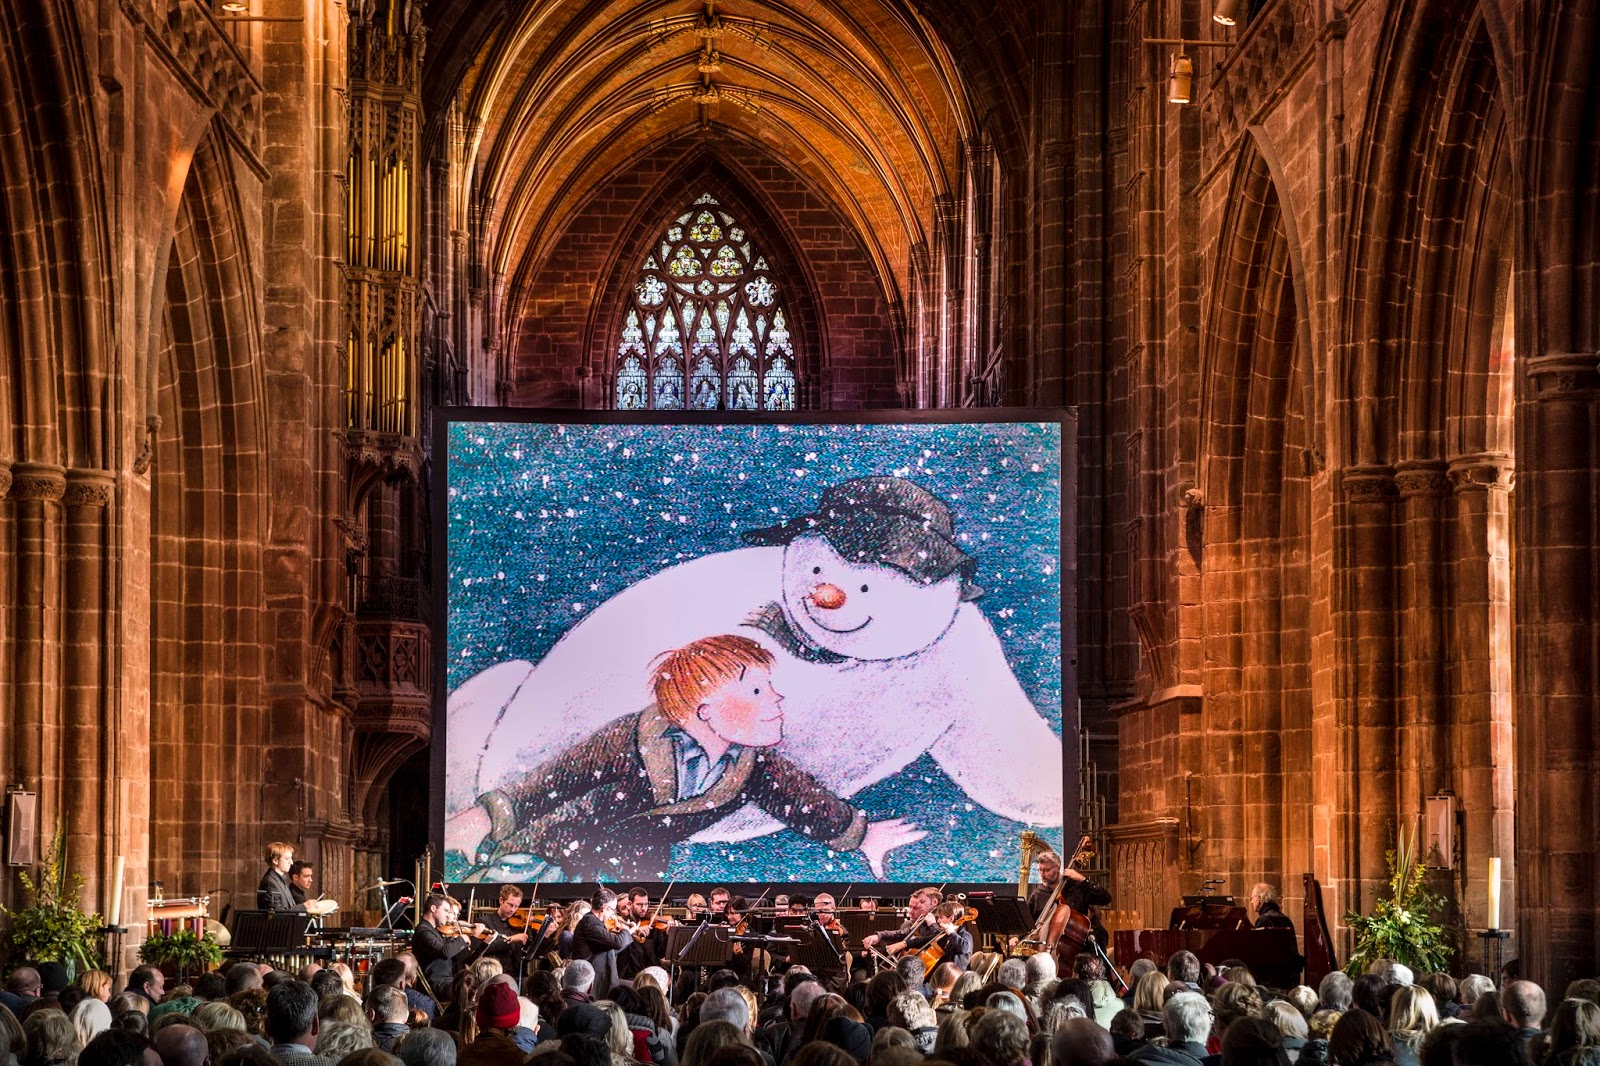 audience watching the snowman film on a large screen in the cathedral with a large orchestra playing in front of the screen